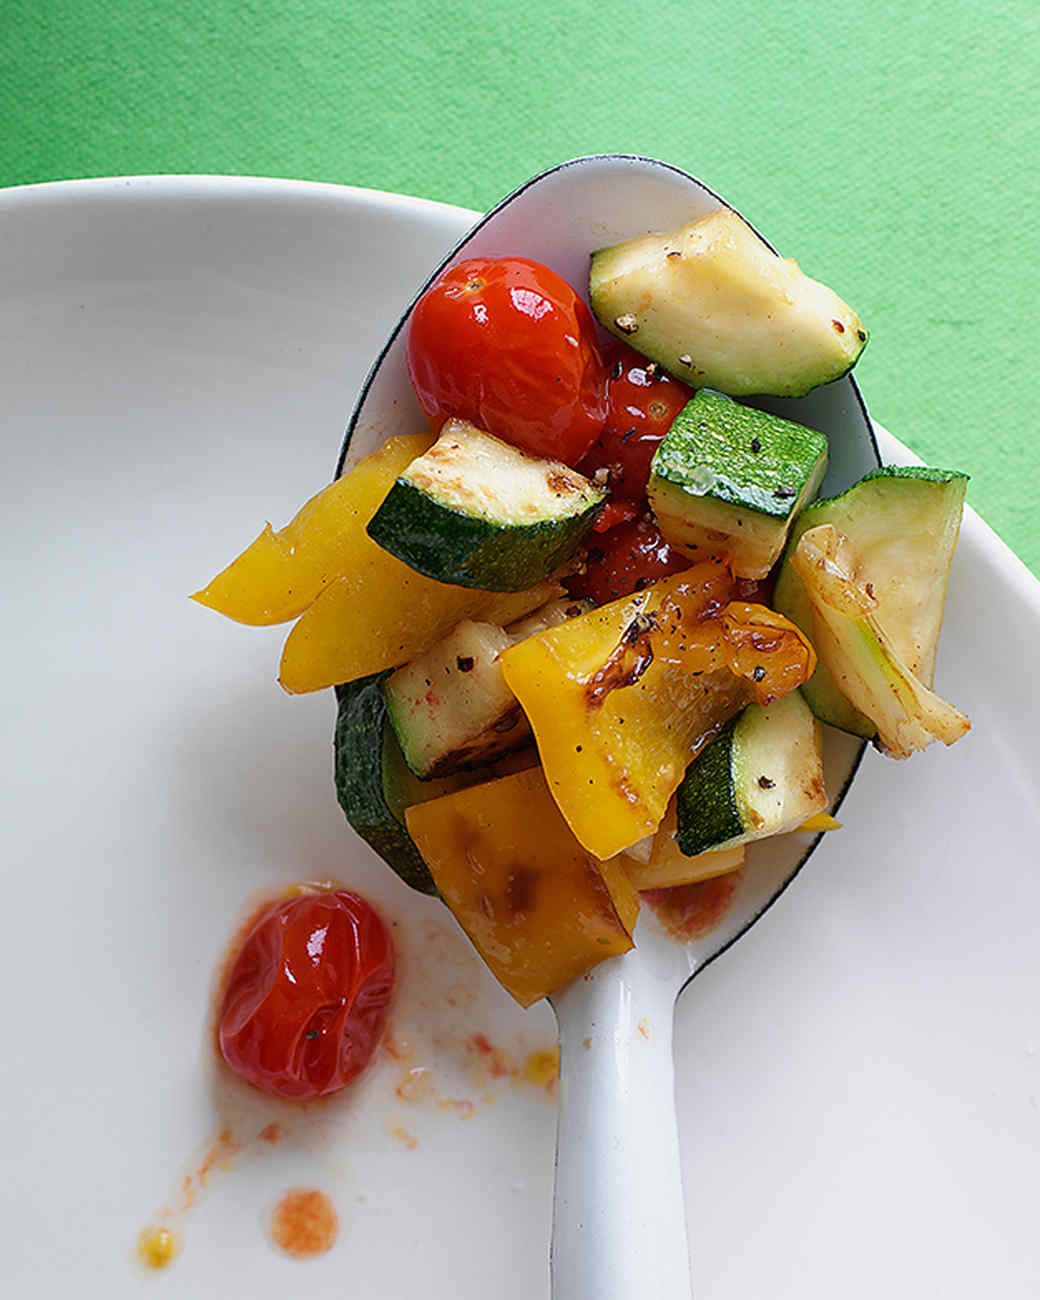 Sauteed Zucchini, Peppers, and Tomatoes